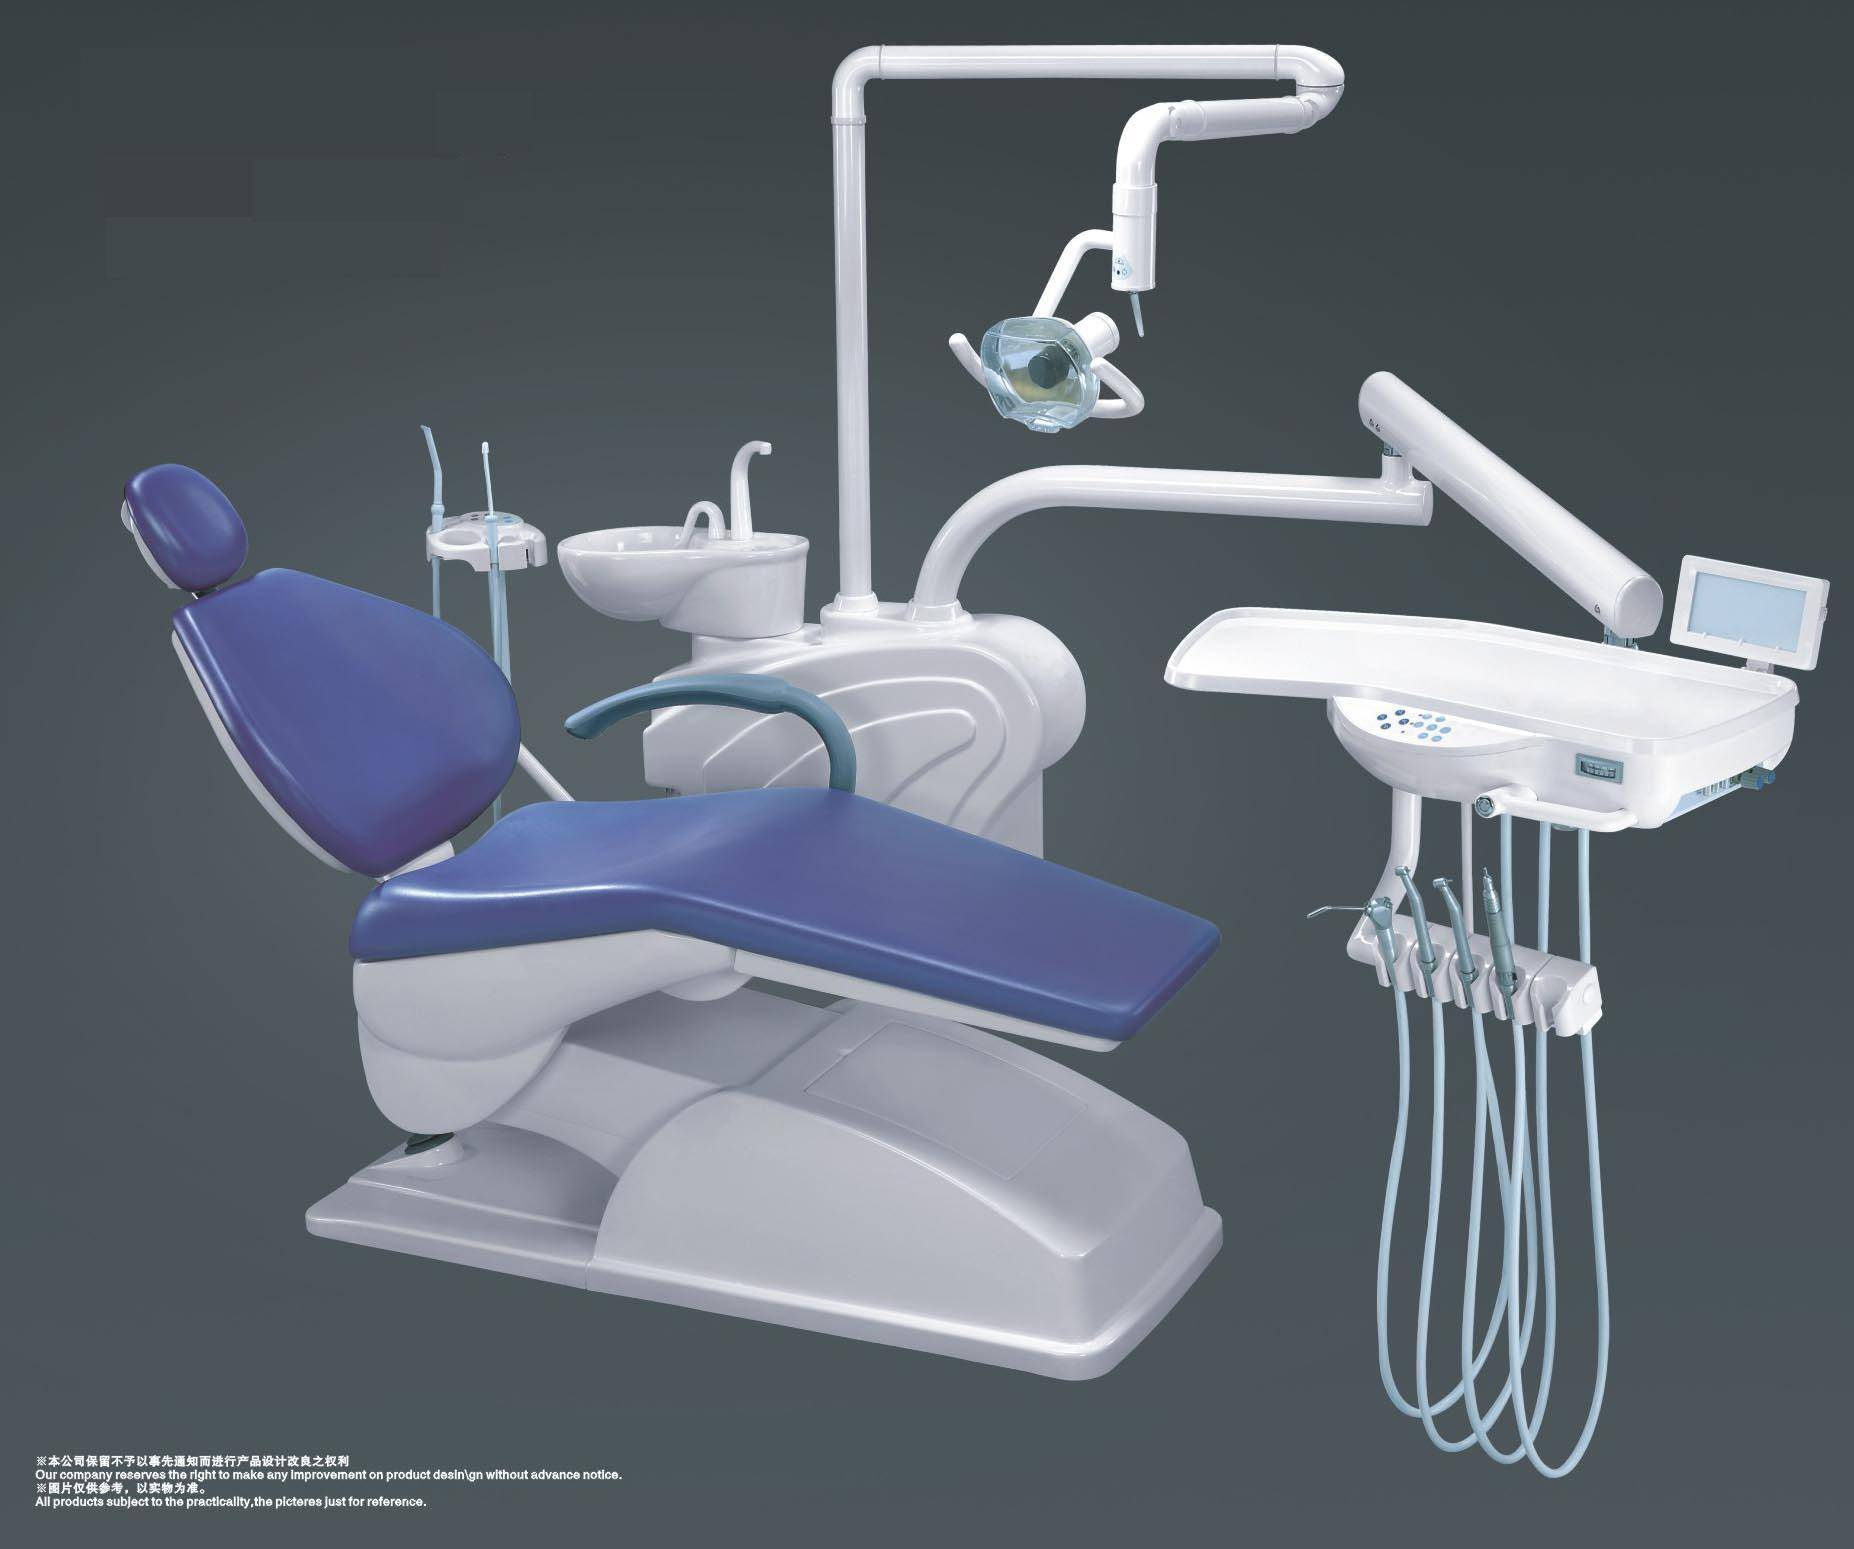 SR-A1000 dental chair units